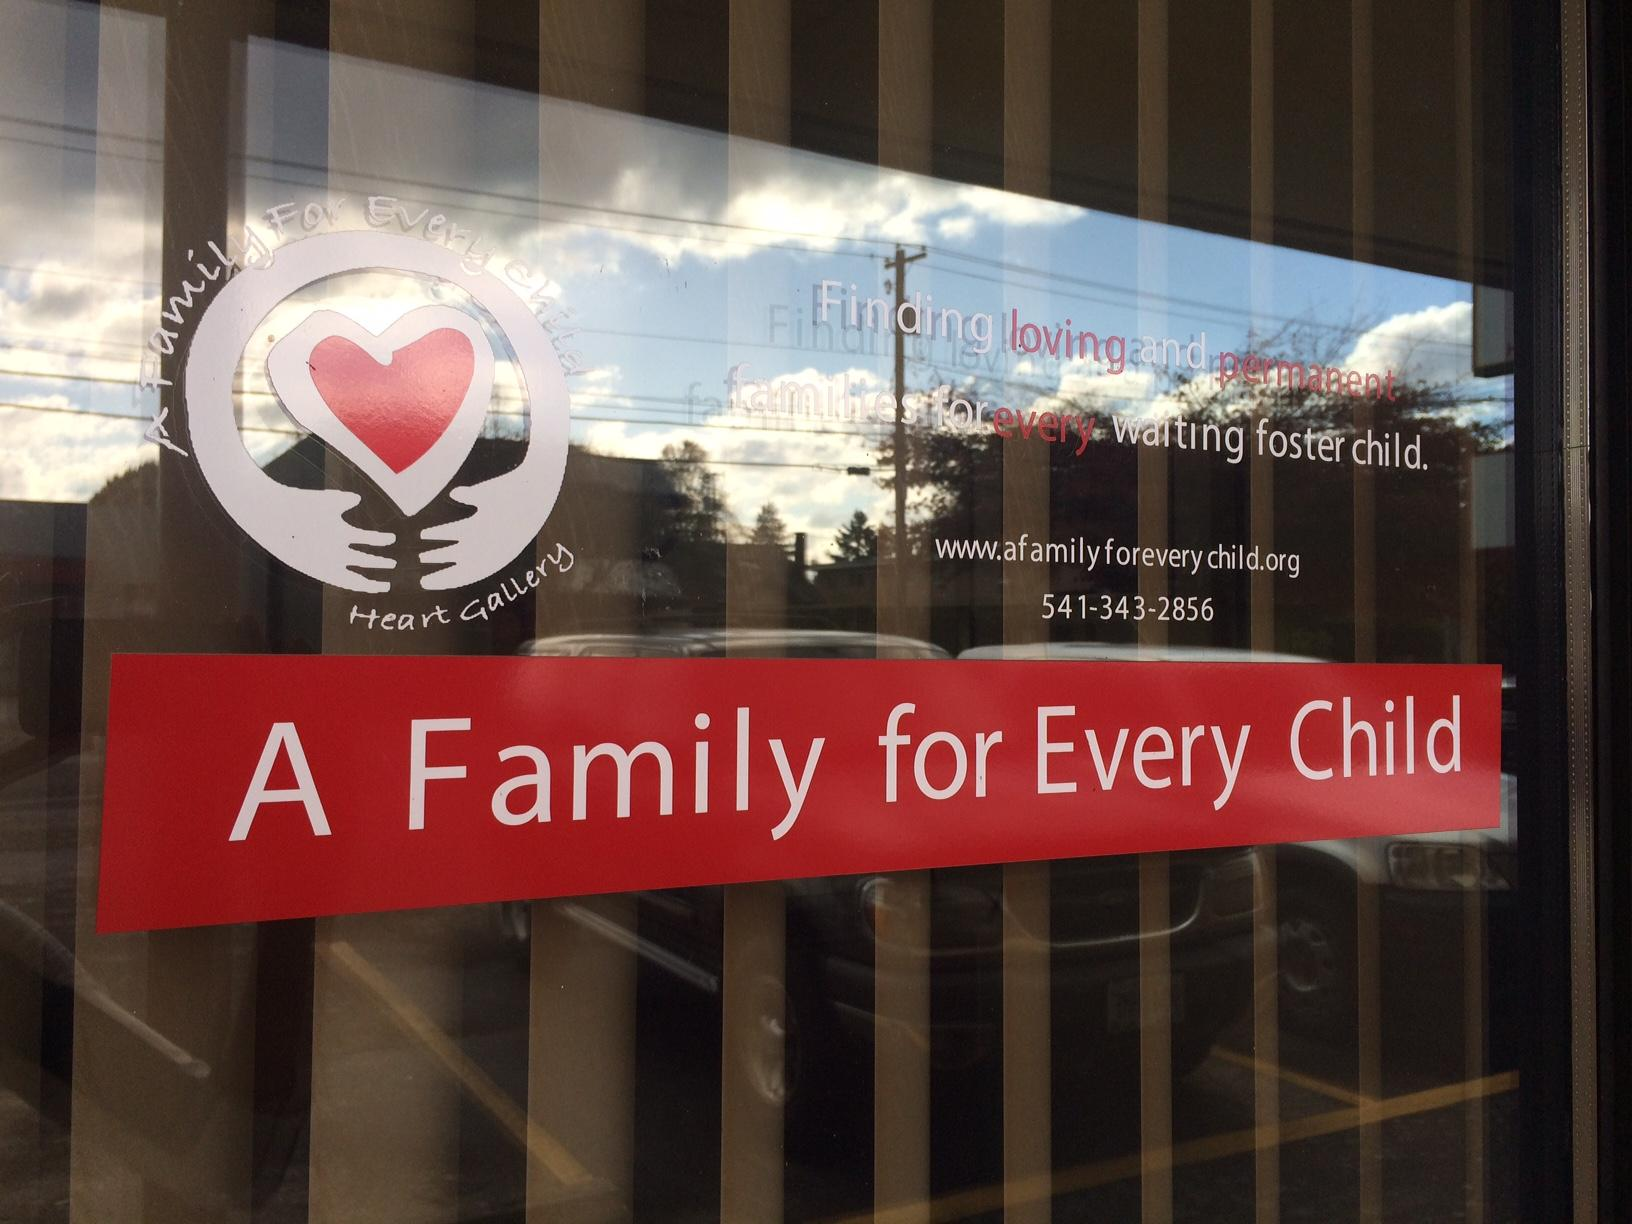 Right now in Oregon, there are roughly 10,000 foster kids waiting for a permanent home - and 1,000 foster kids in Lane County alone. (SBG)